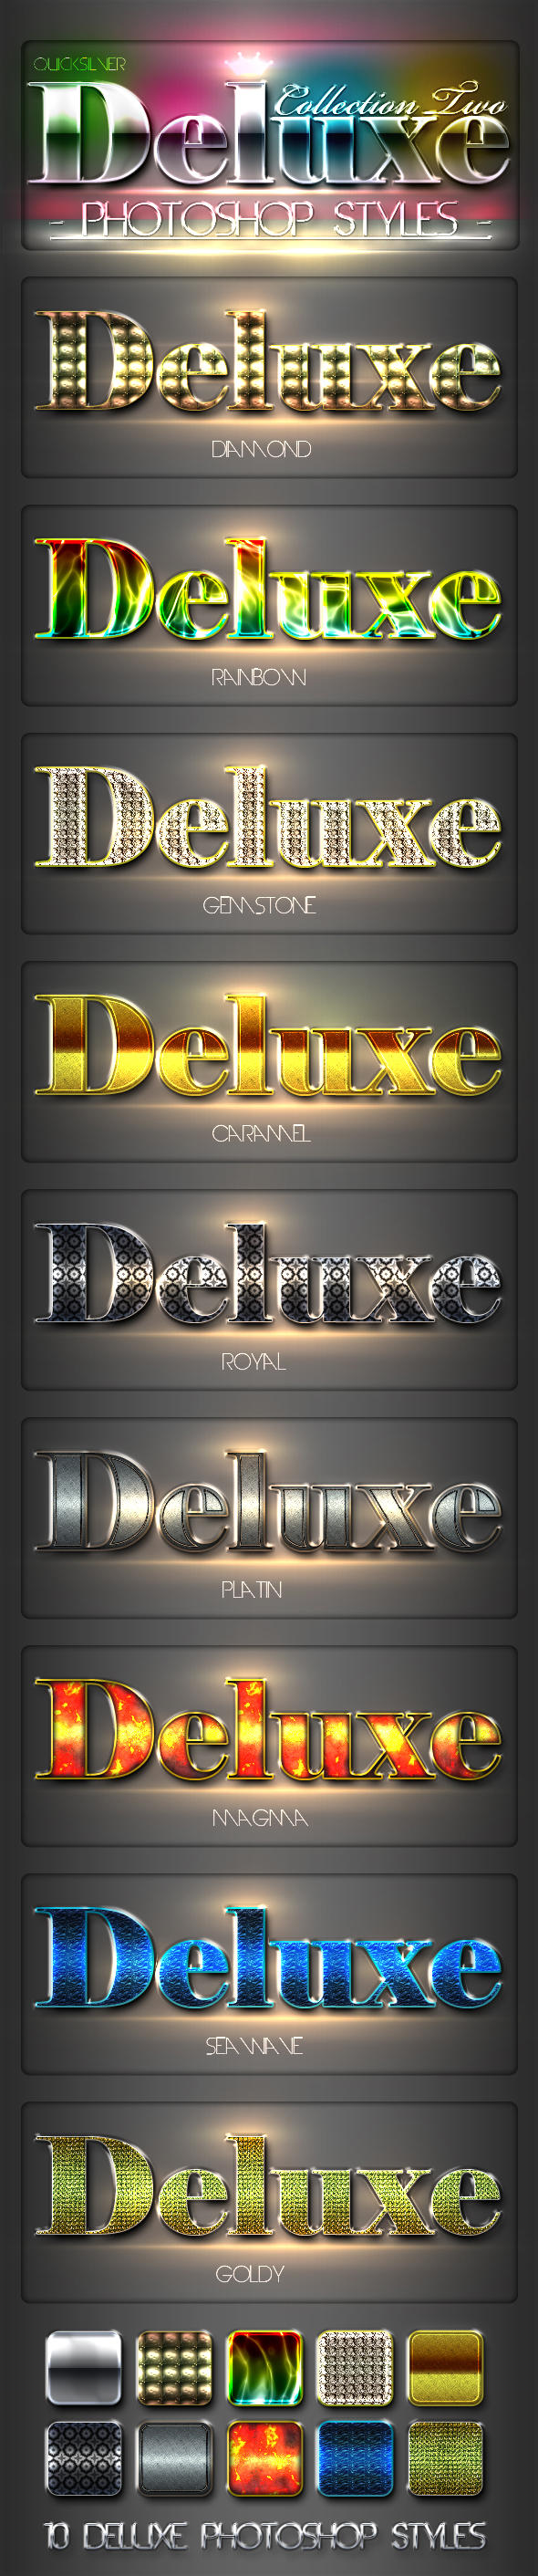 10 DeLuxe Photoshop Layer Styles FREE ASL FILE by MuzikizumWeb